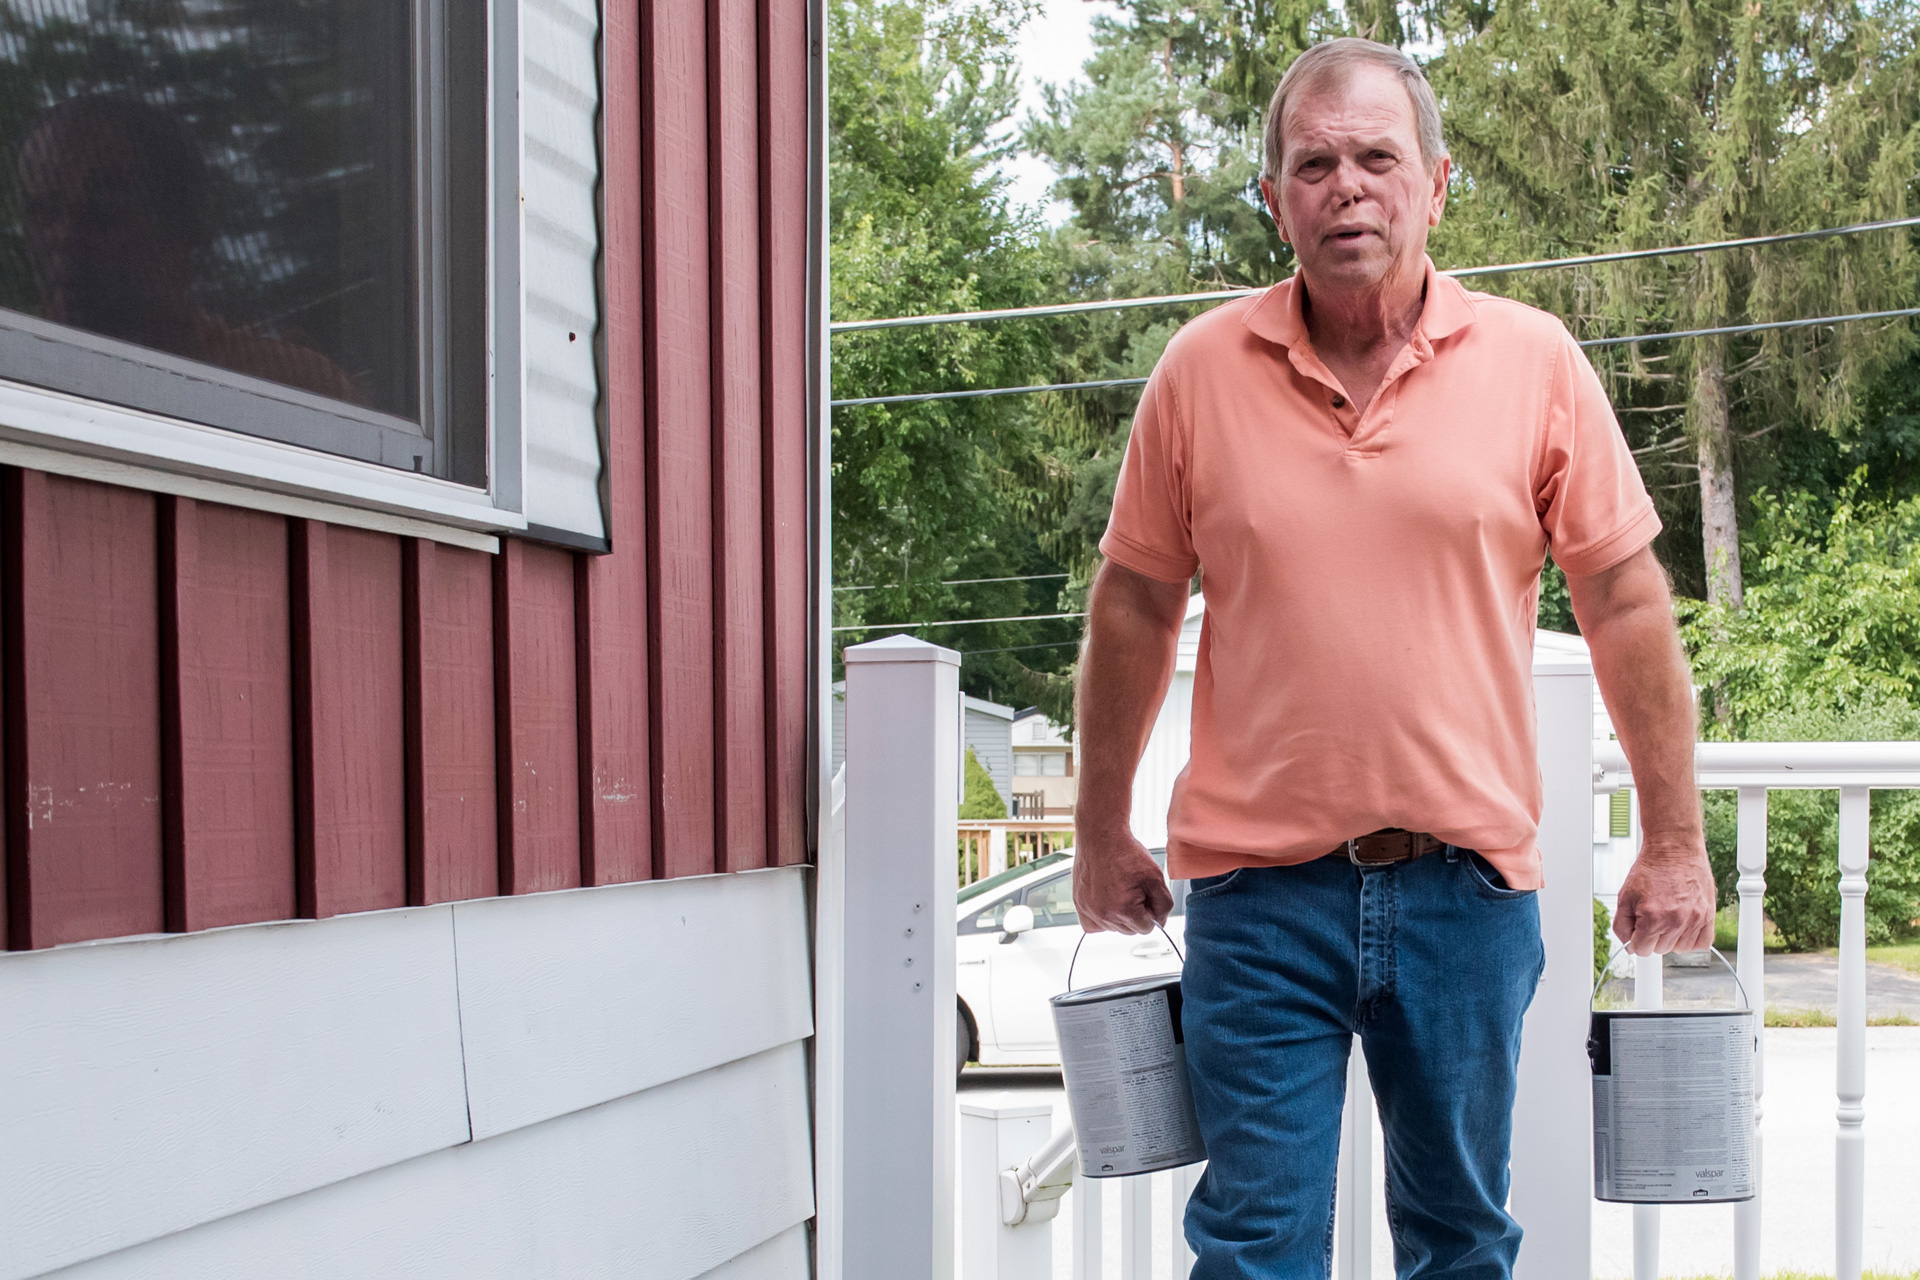 Man carrying two cans of paint onto porch